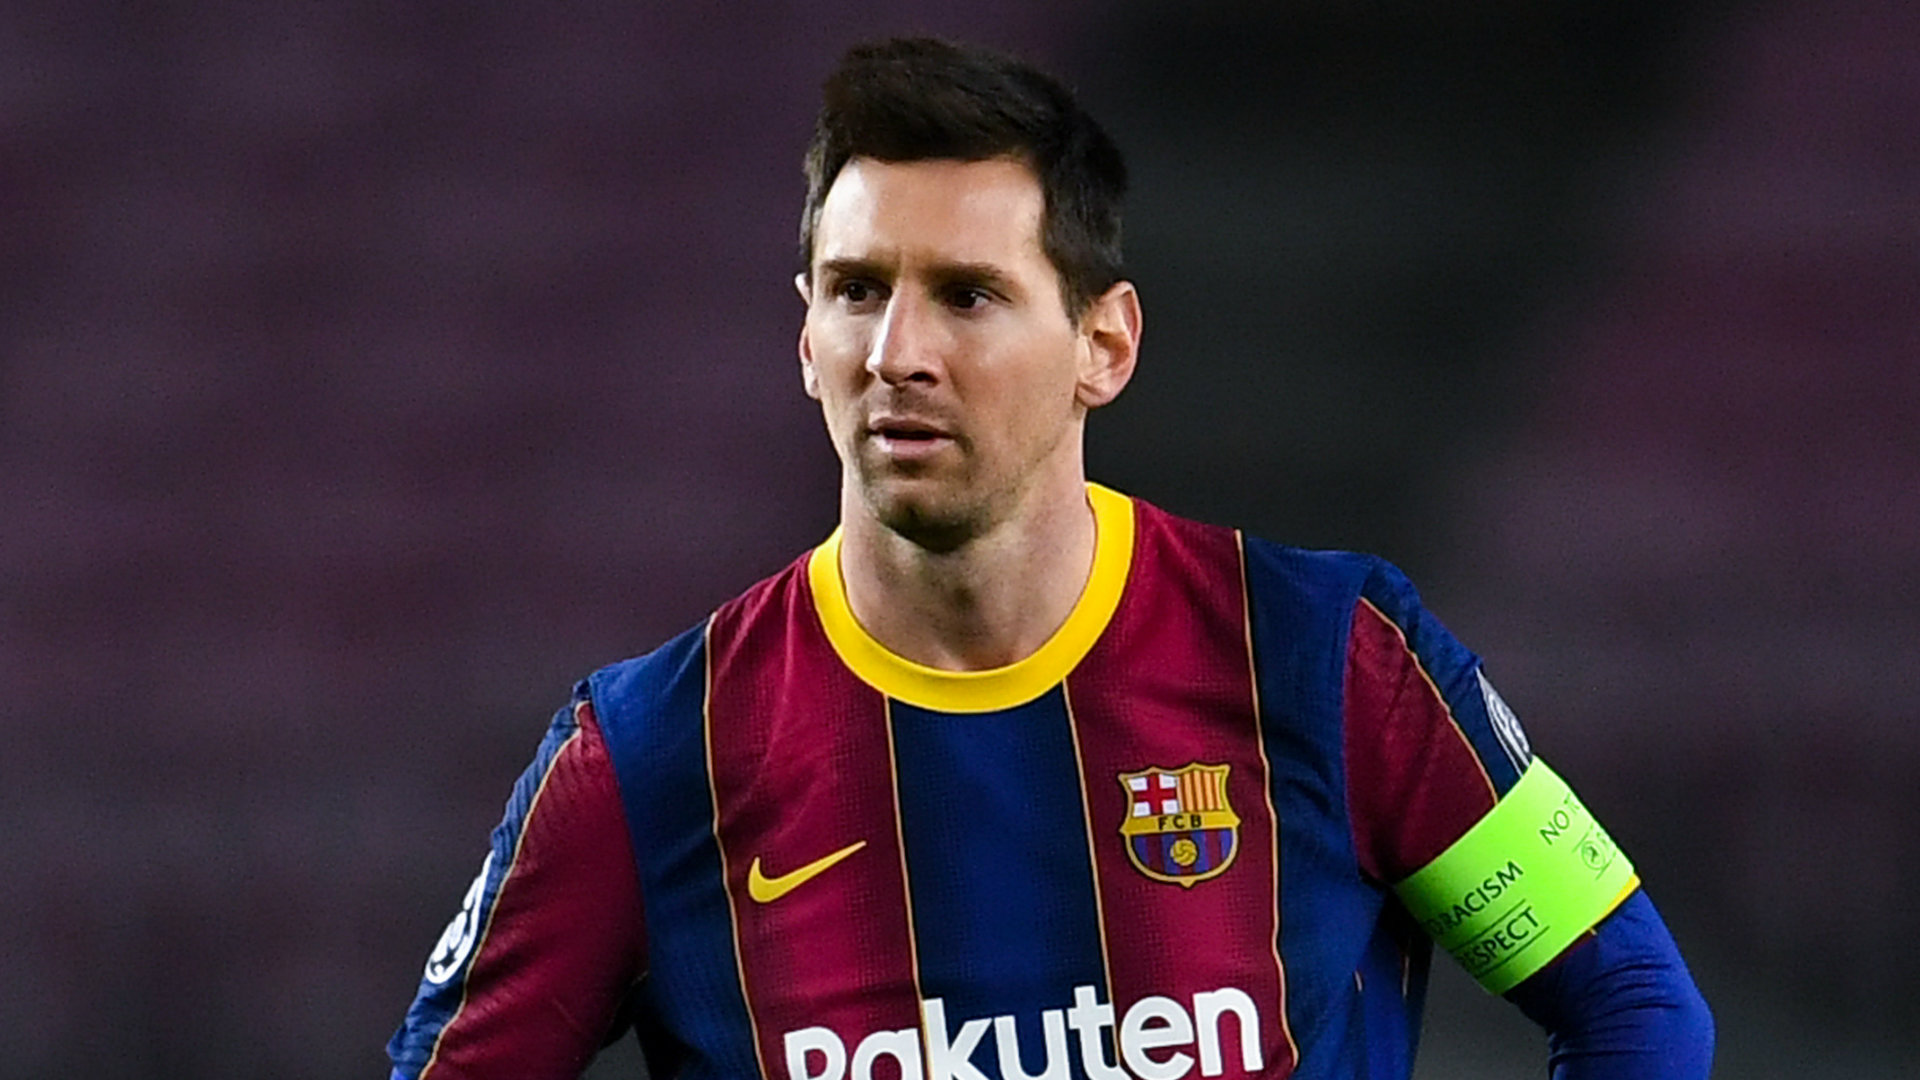 Reactions on Messi's departure from Barca.